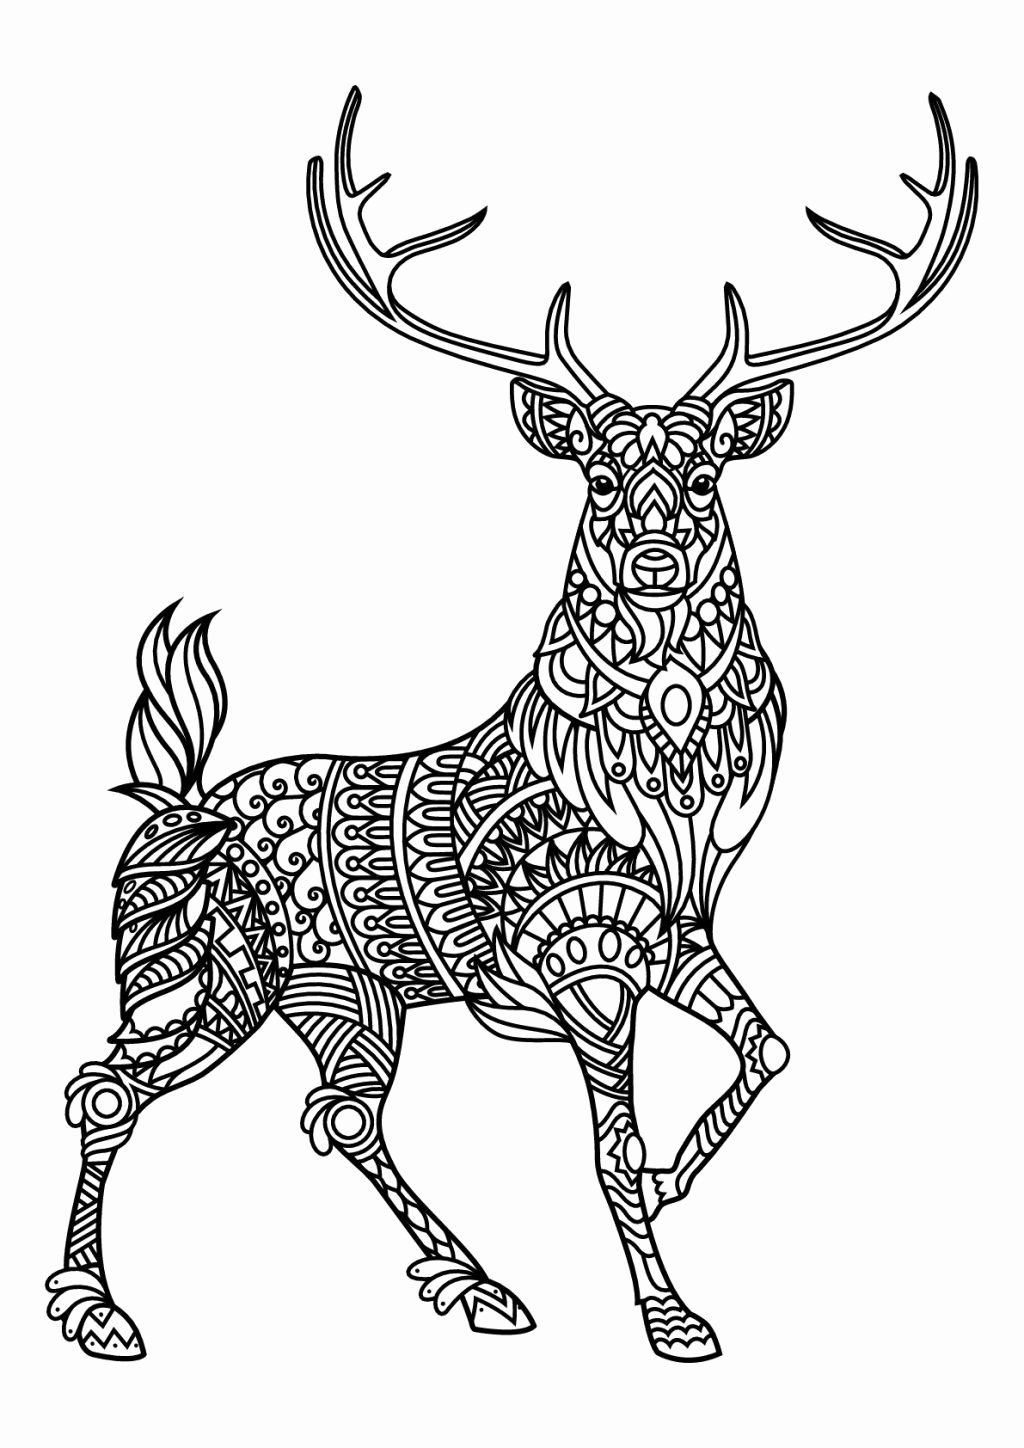 Pin By Robbin Fredericksen On Embroidery In 2020 Unicorn